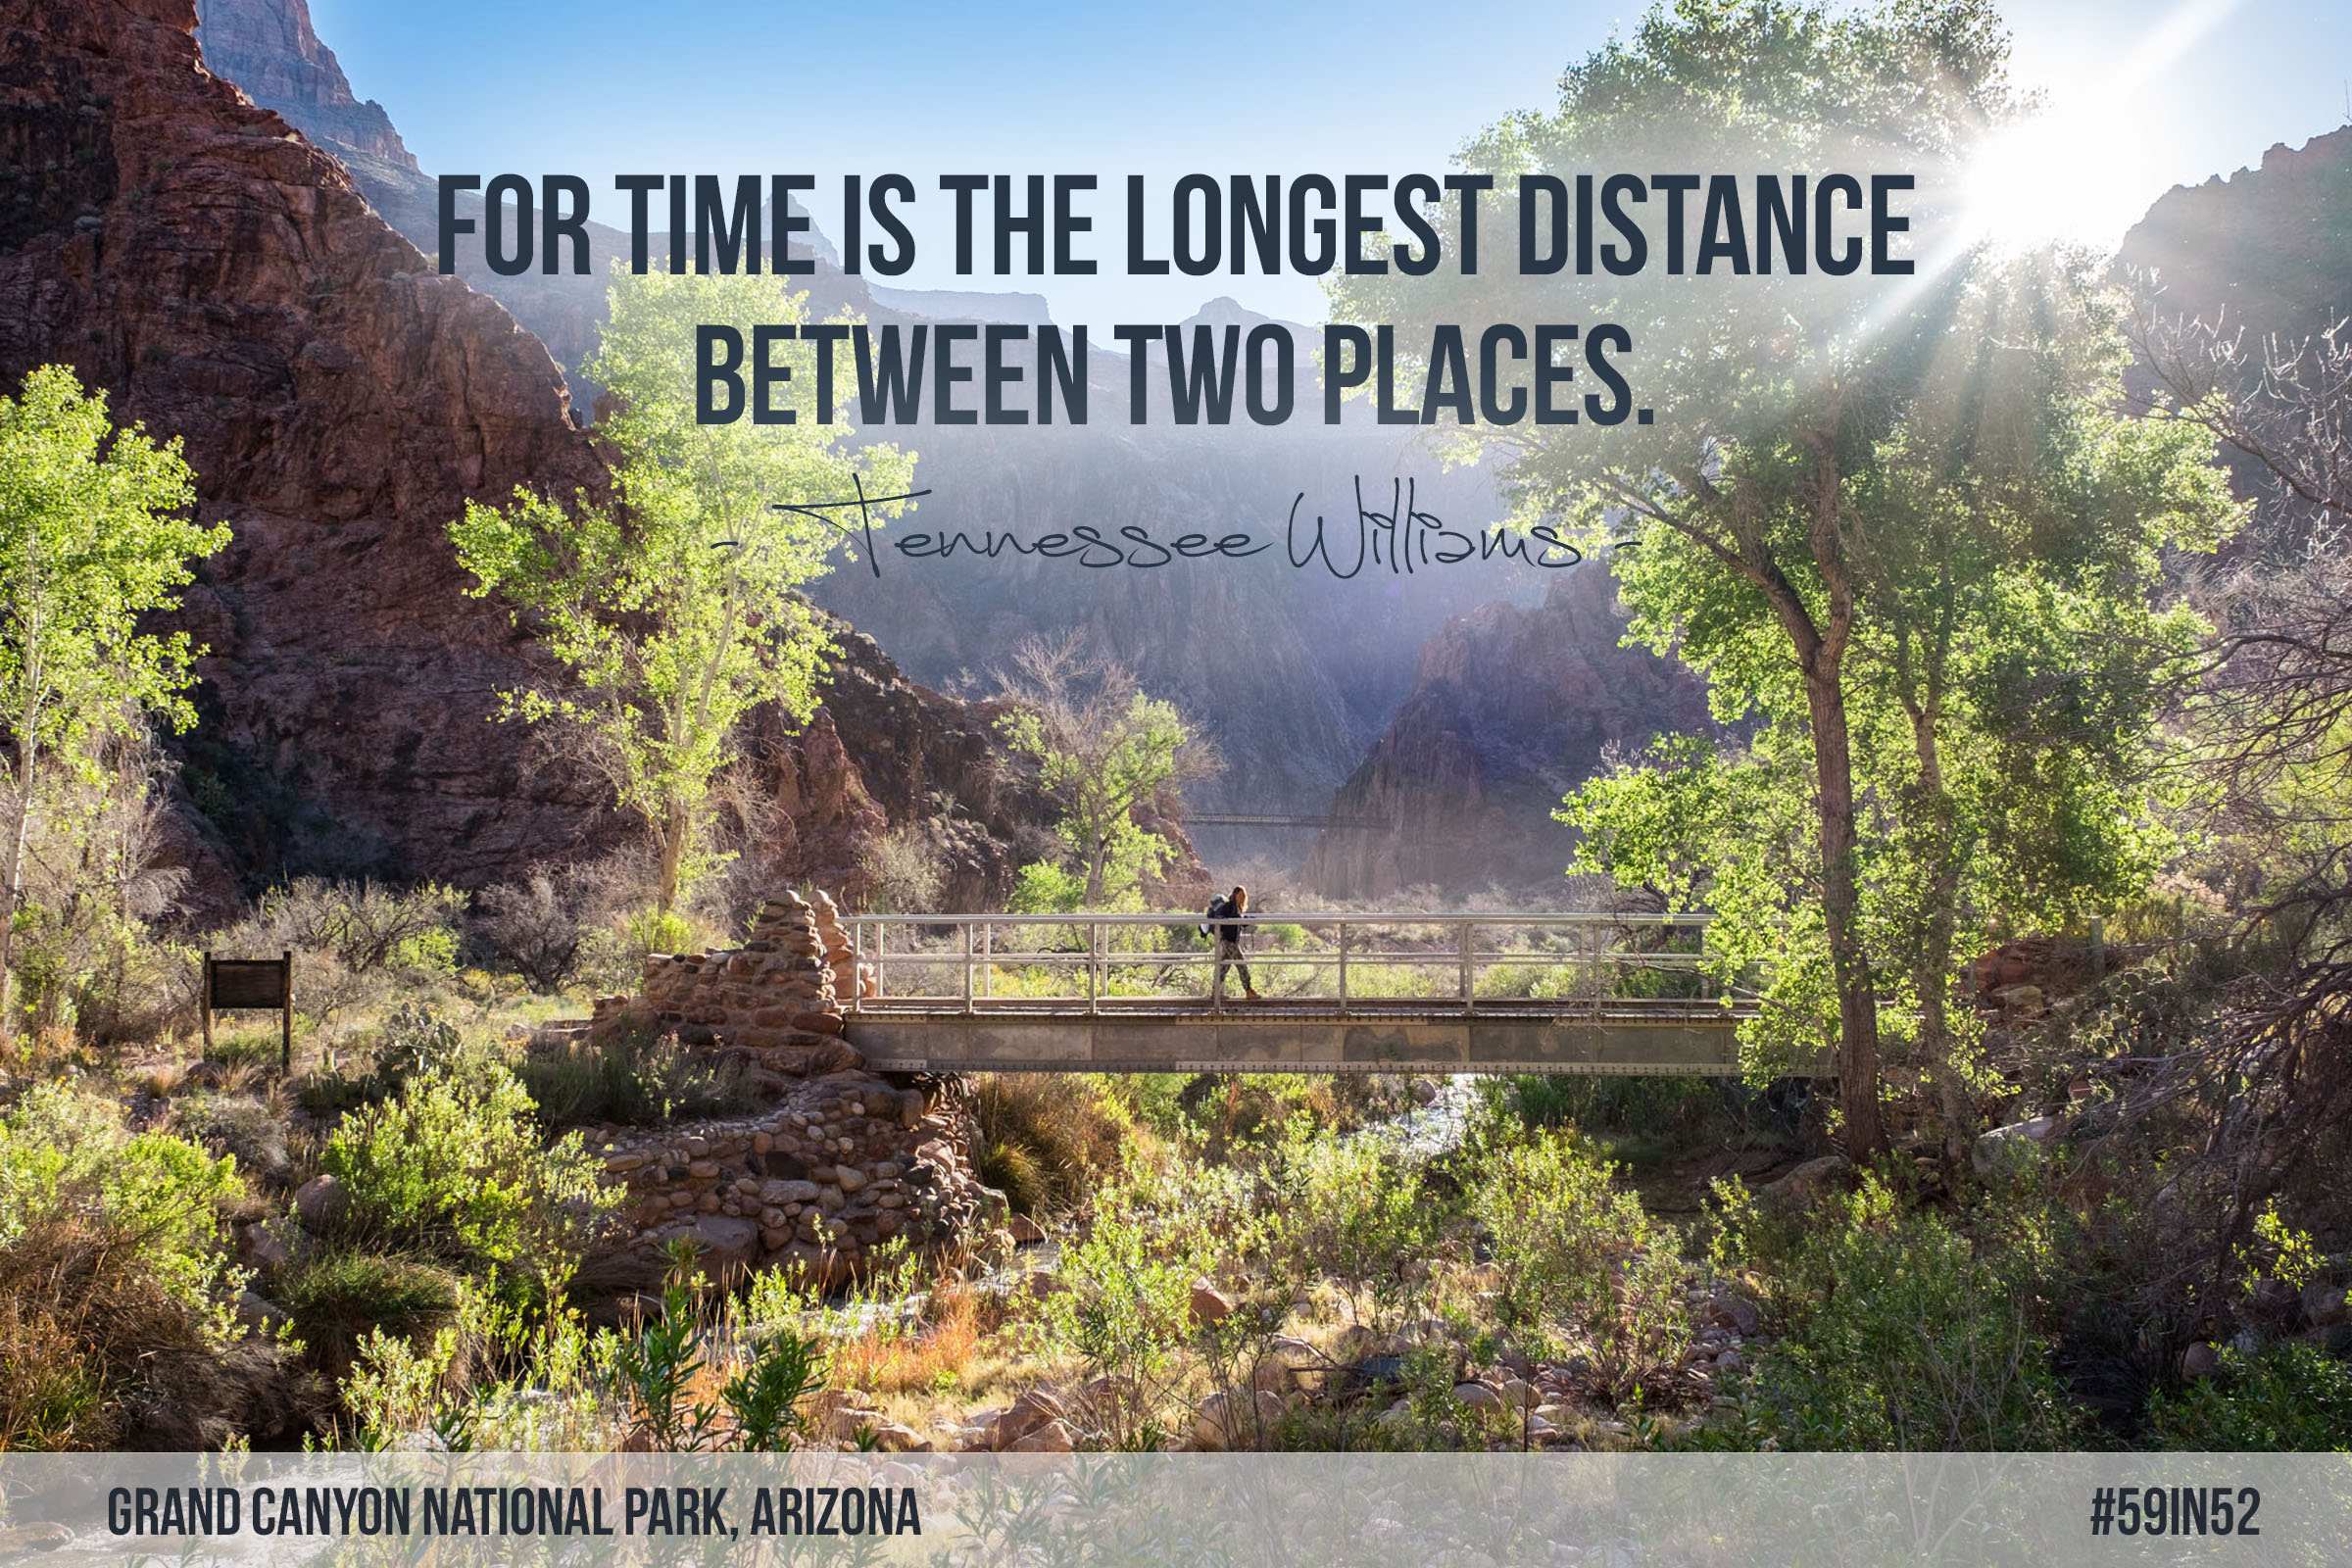 'For time is the longest distance between two places.' - Tennessee Williams